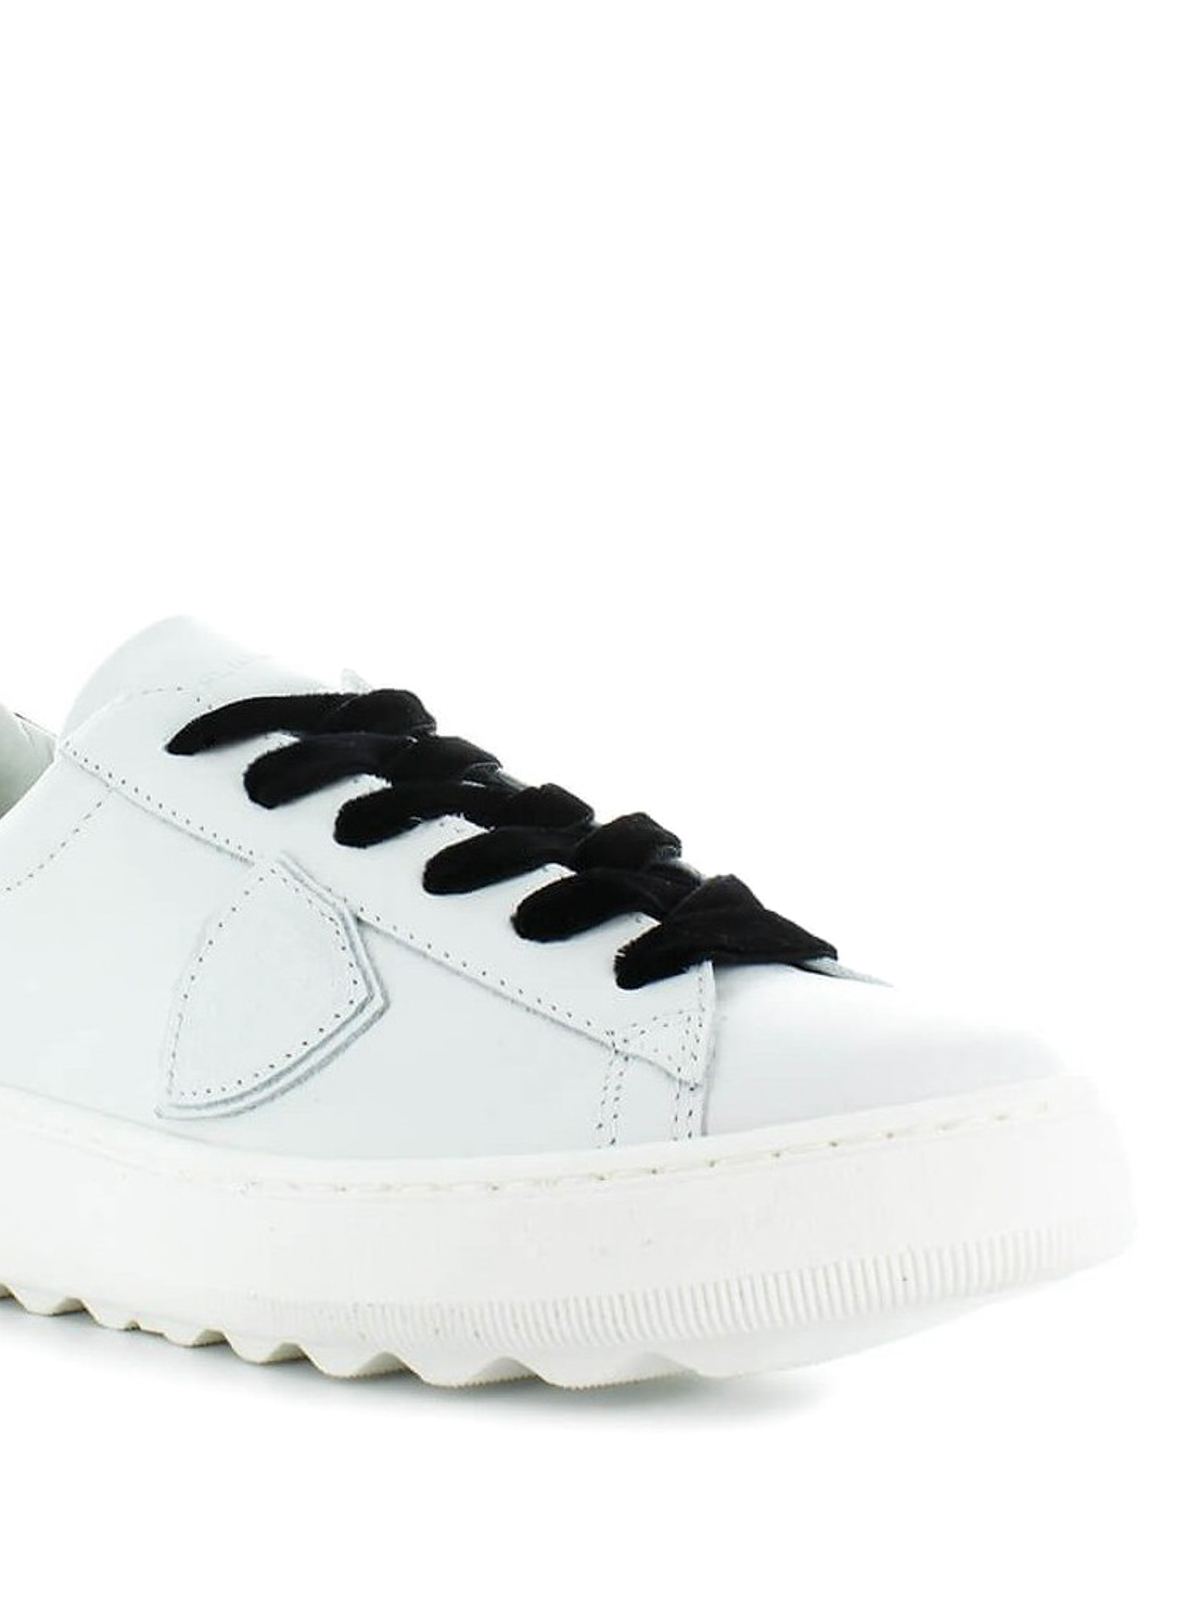 Madeleine black laces sneakers